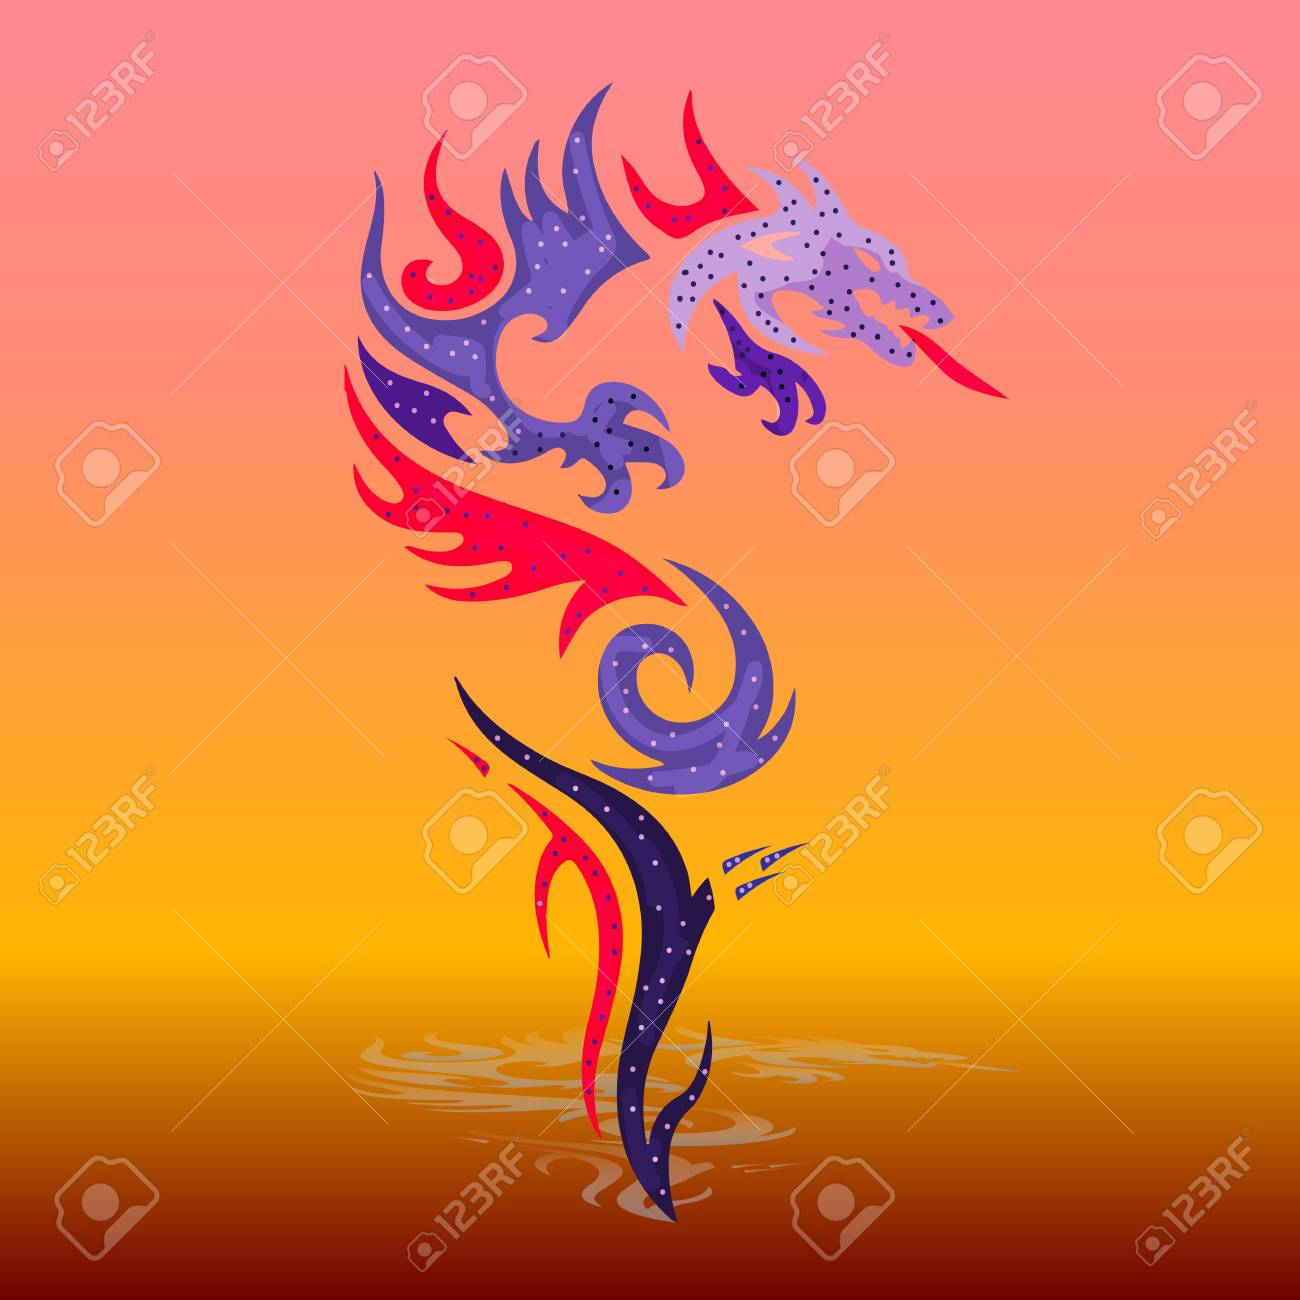 ornate violet spotted dragon from the mouth fires cartoon